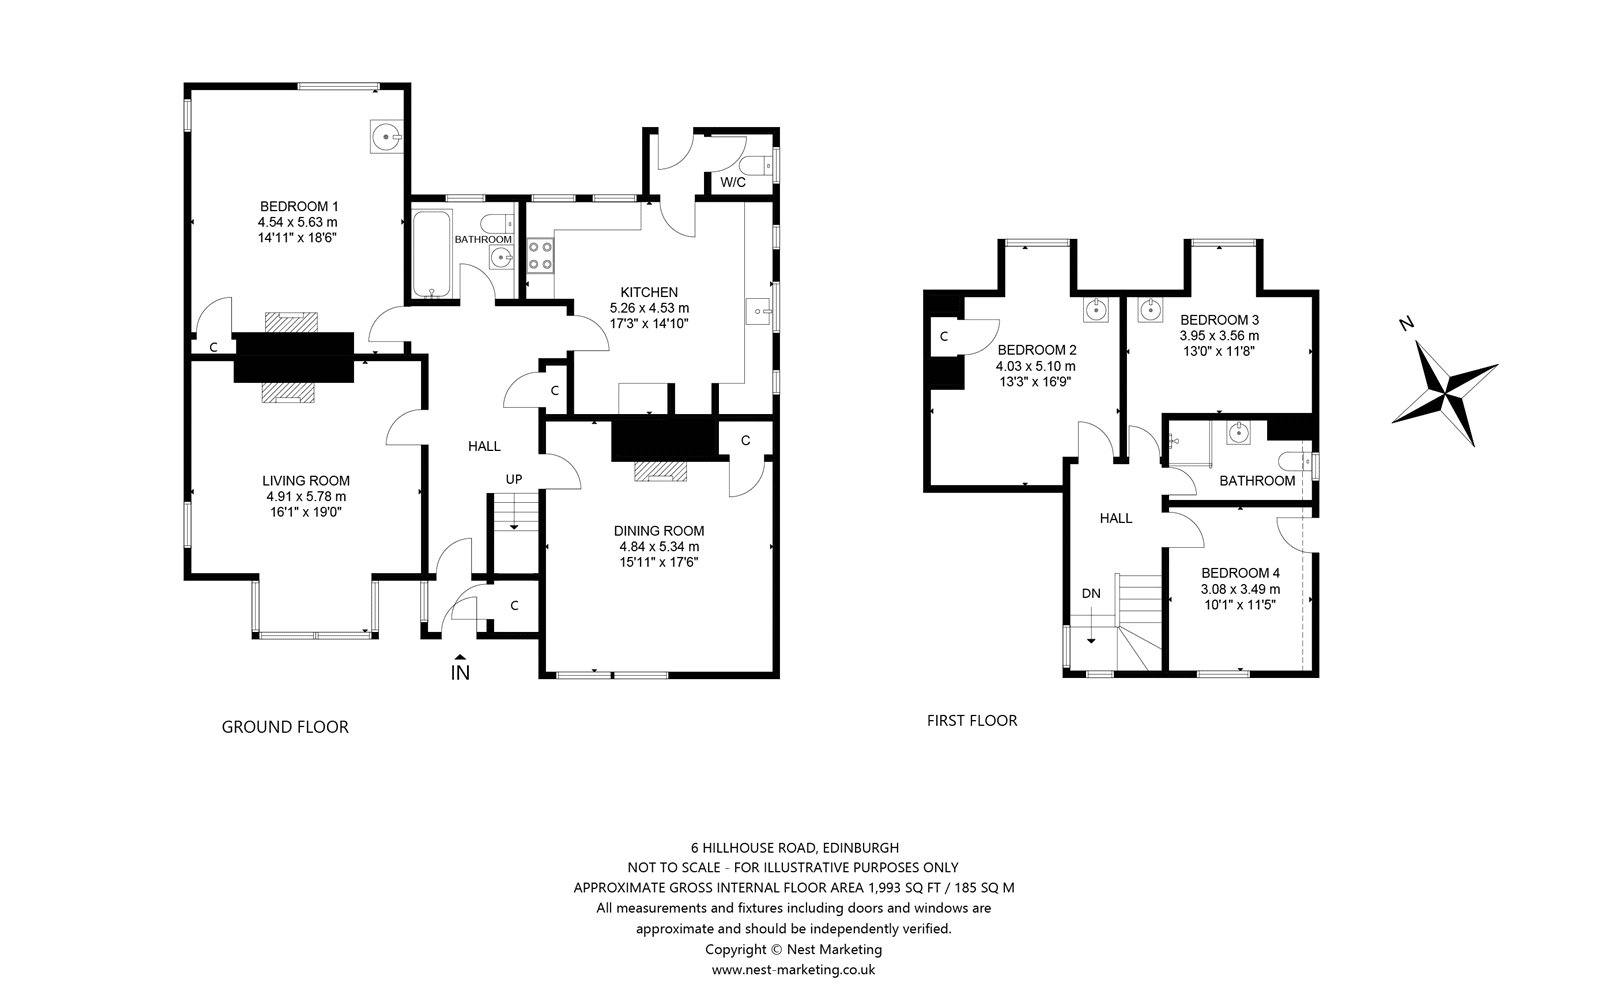 Floorplans for Hillhouse Road, Edinburgh, EH4